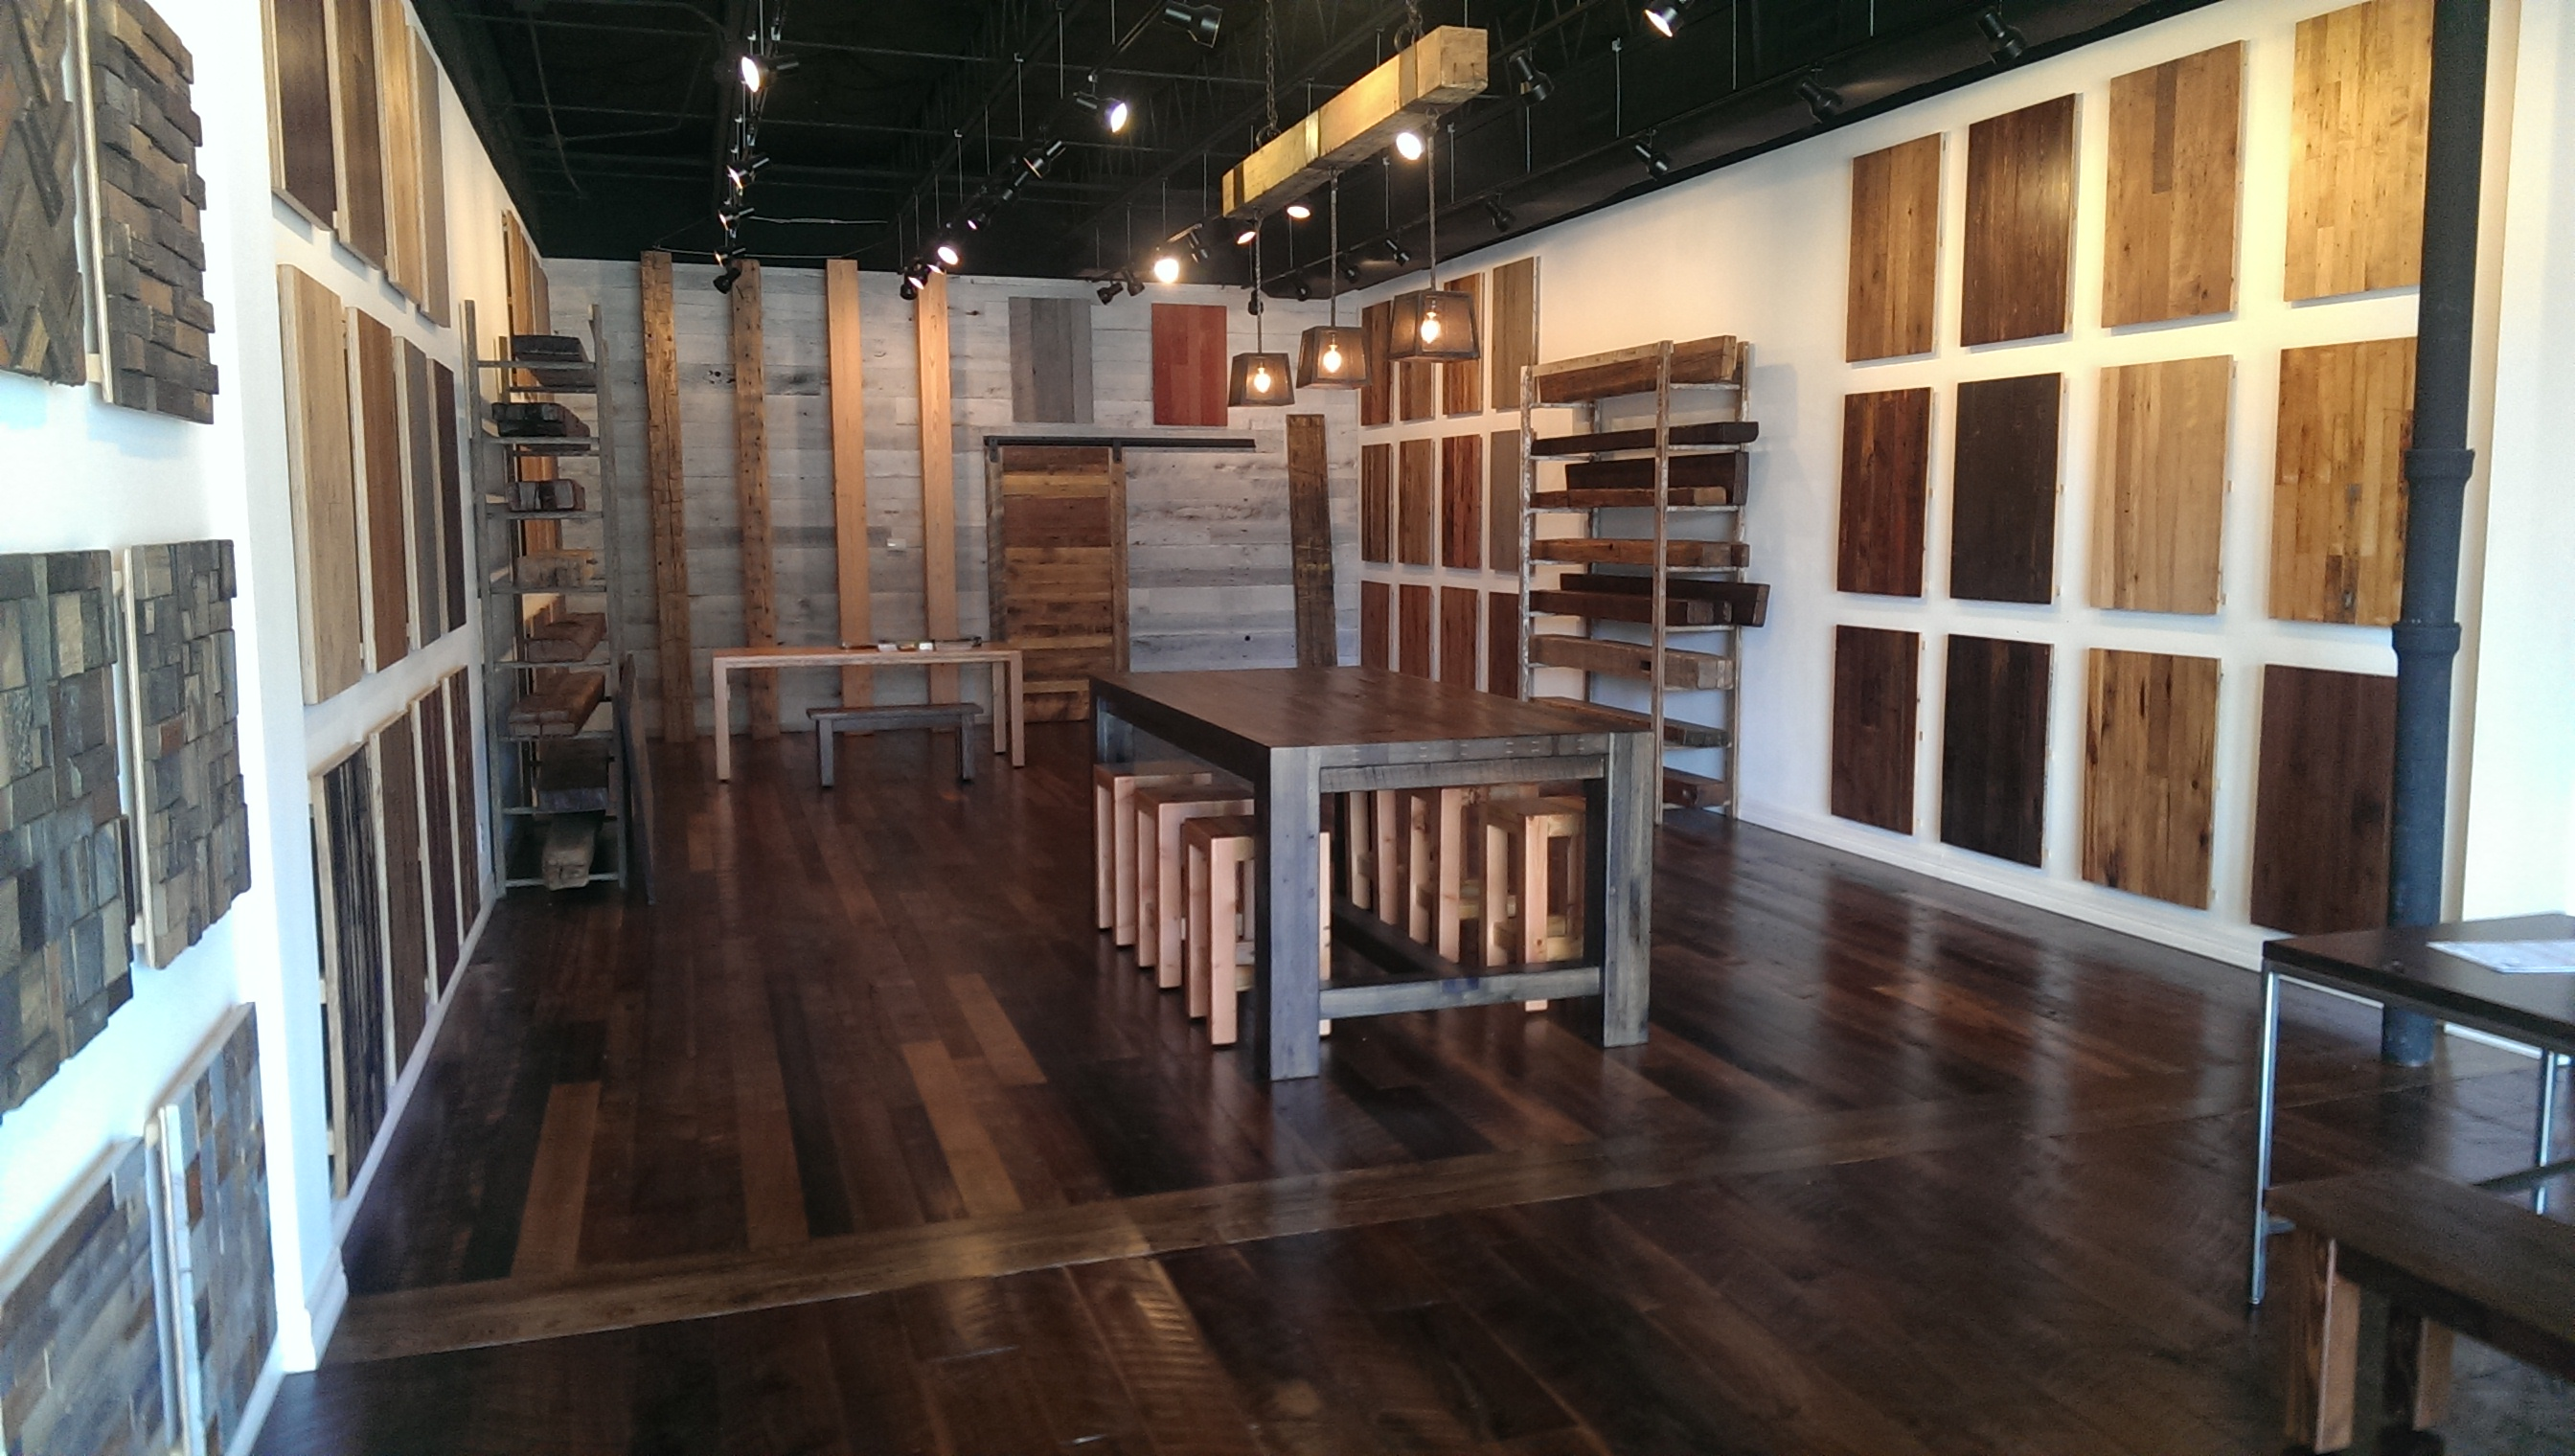 Hardwood Flooring Dallas dallas fort worth plano hardwood flooring materials and installation services offered Reclaimed Designworks Dallas Showroom